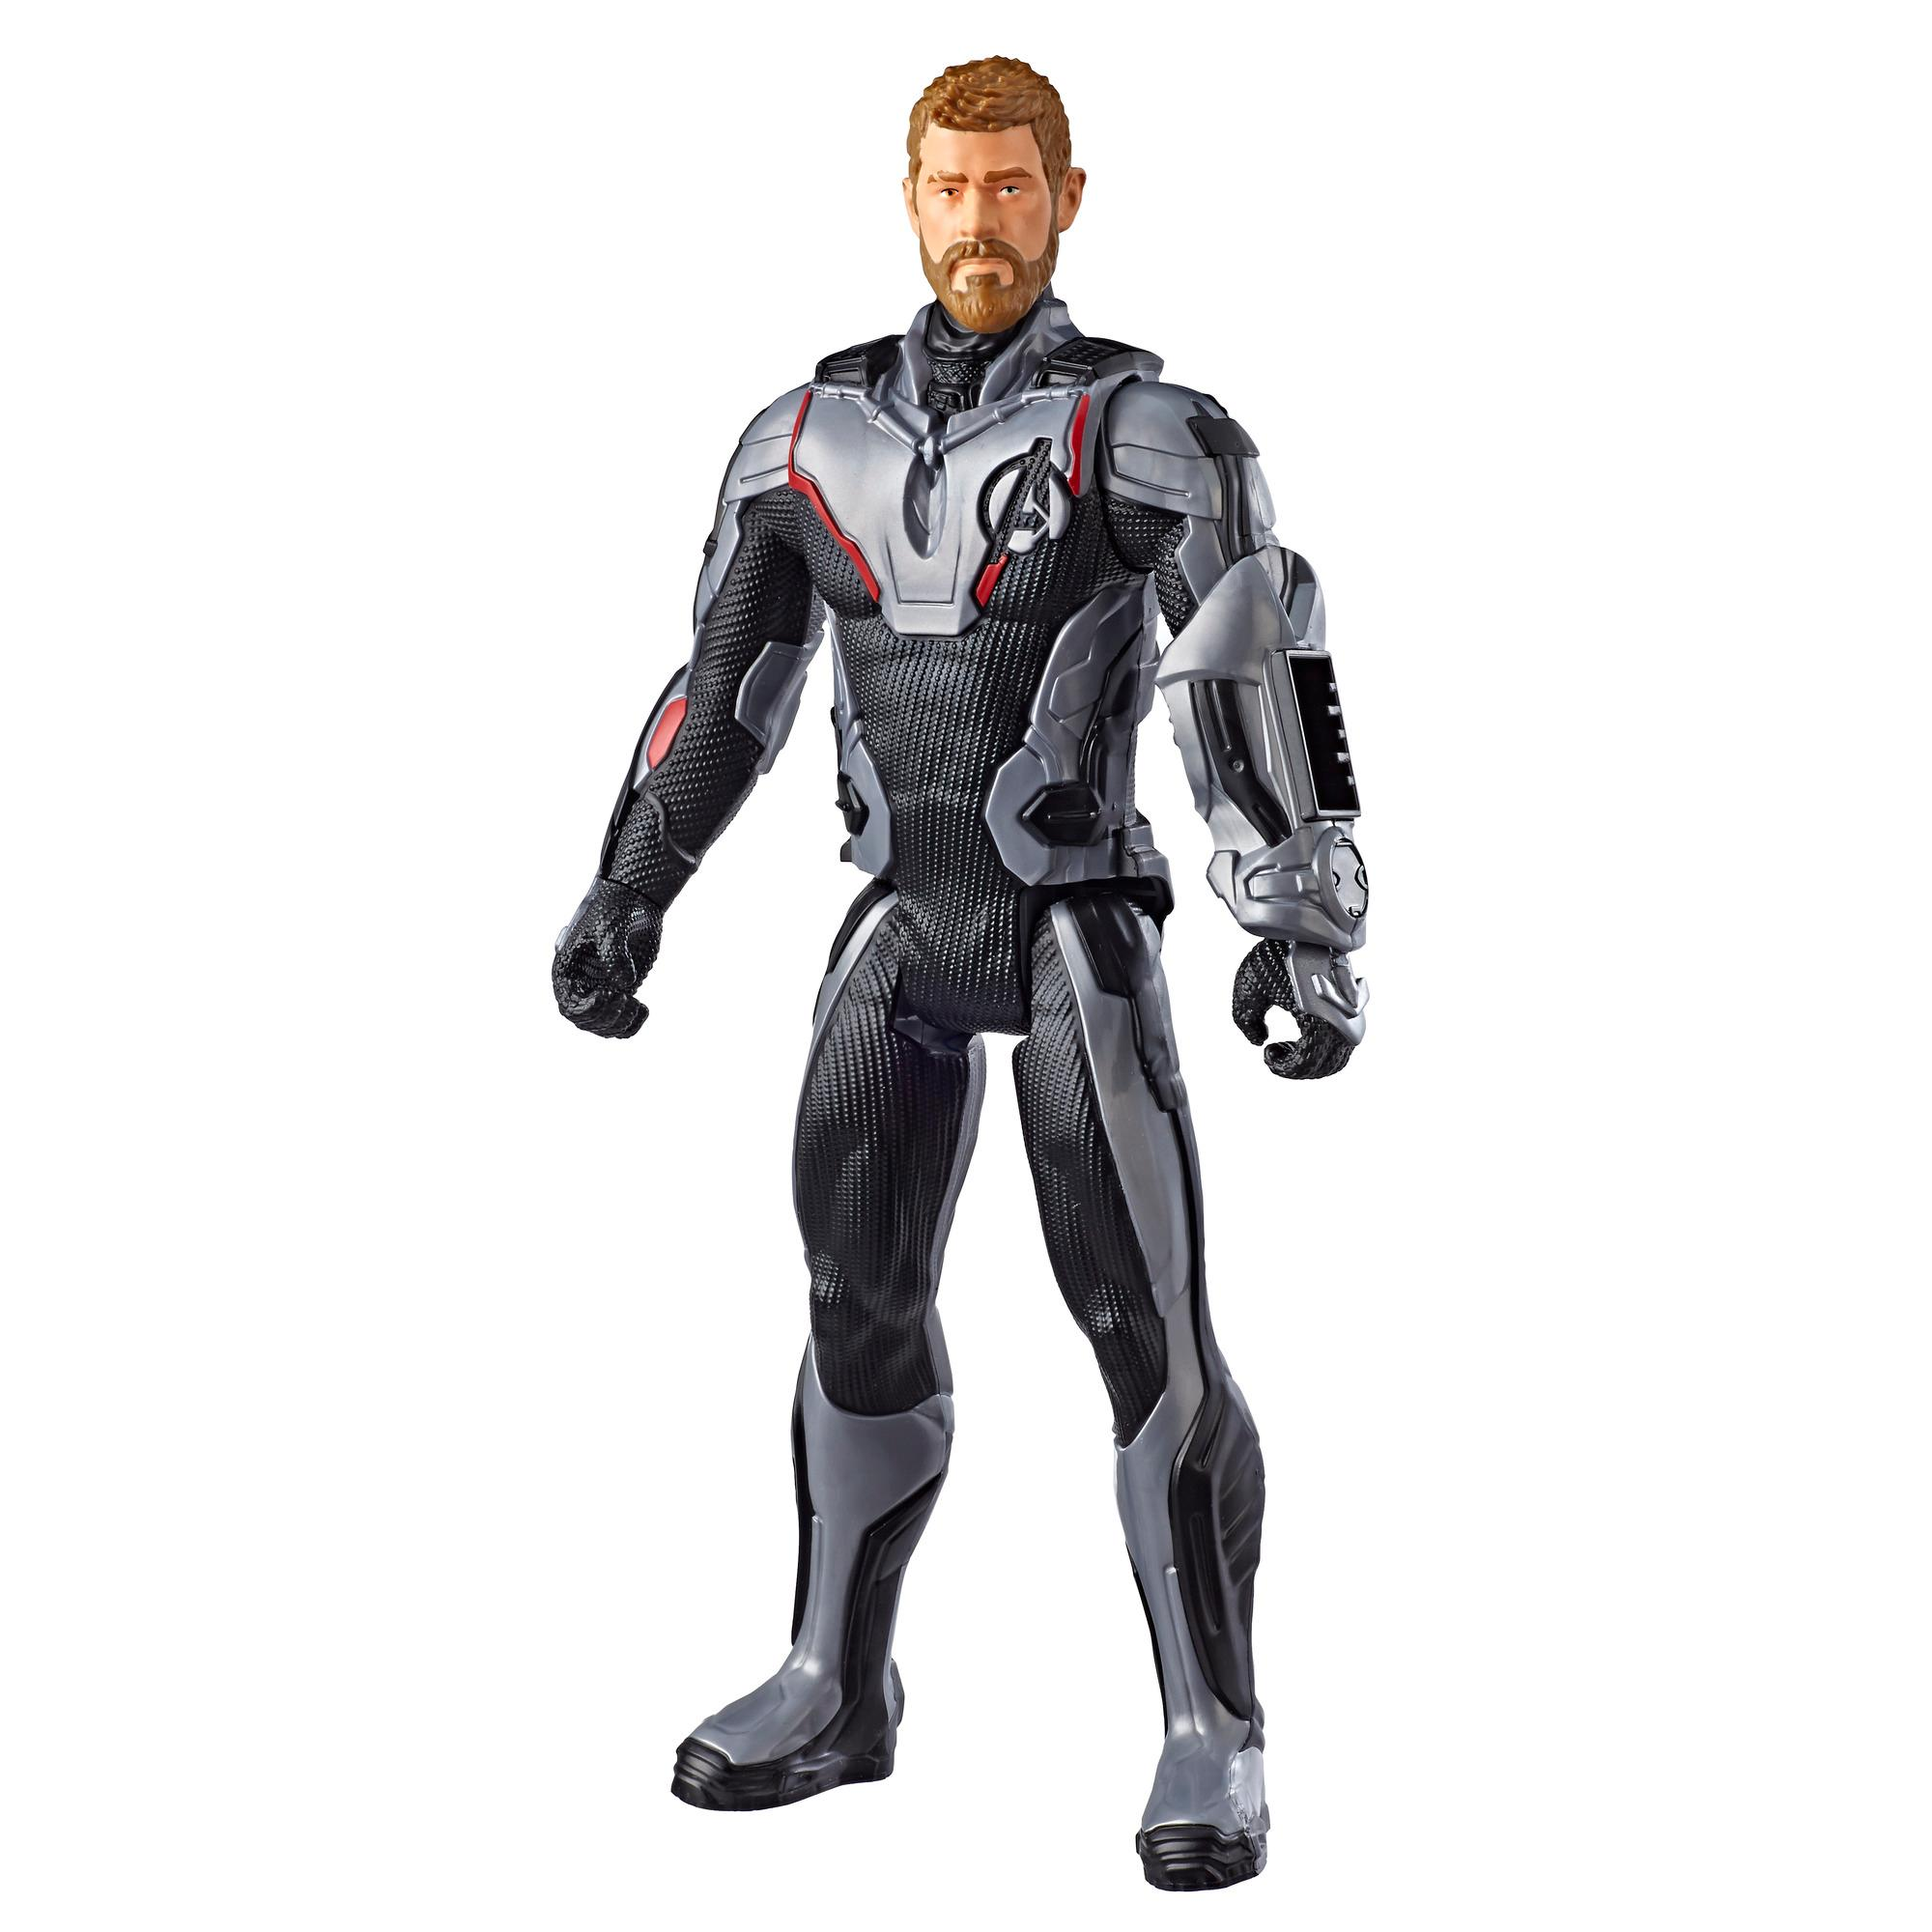 Marvel Avengers: Endgame Titan Hero Series Thor 12-Inch Action Figure